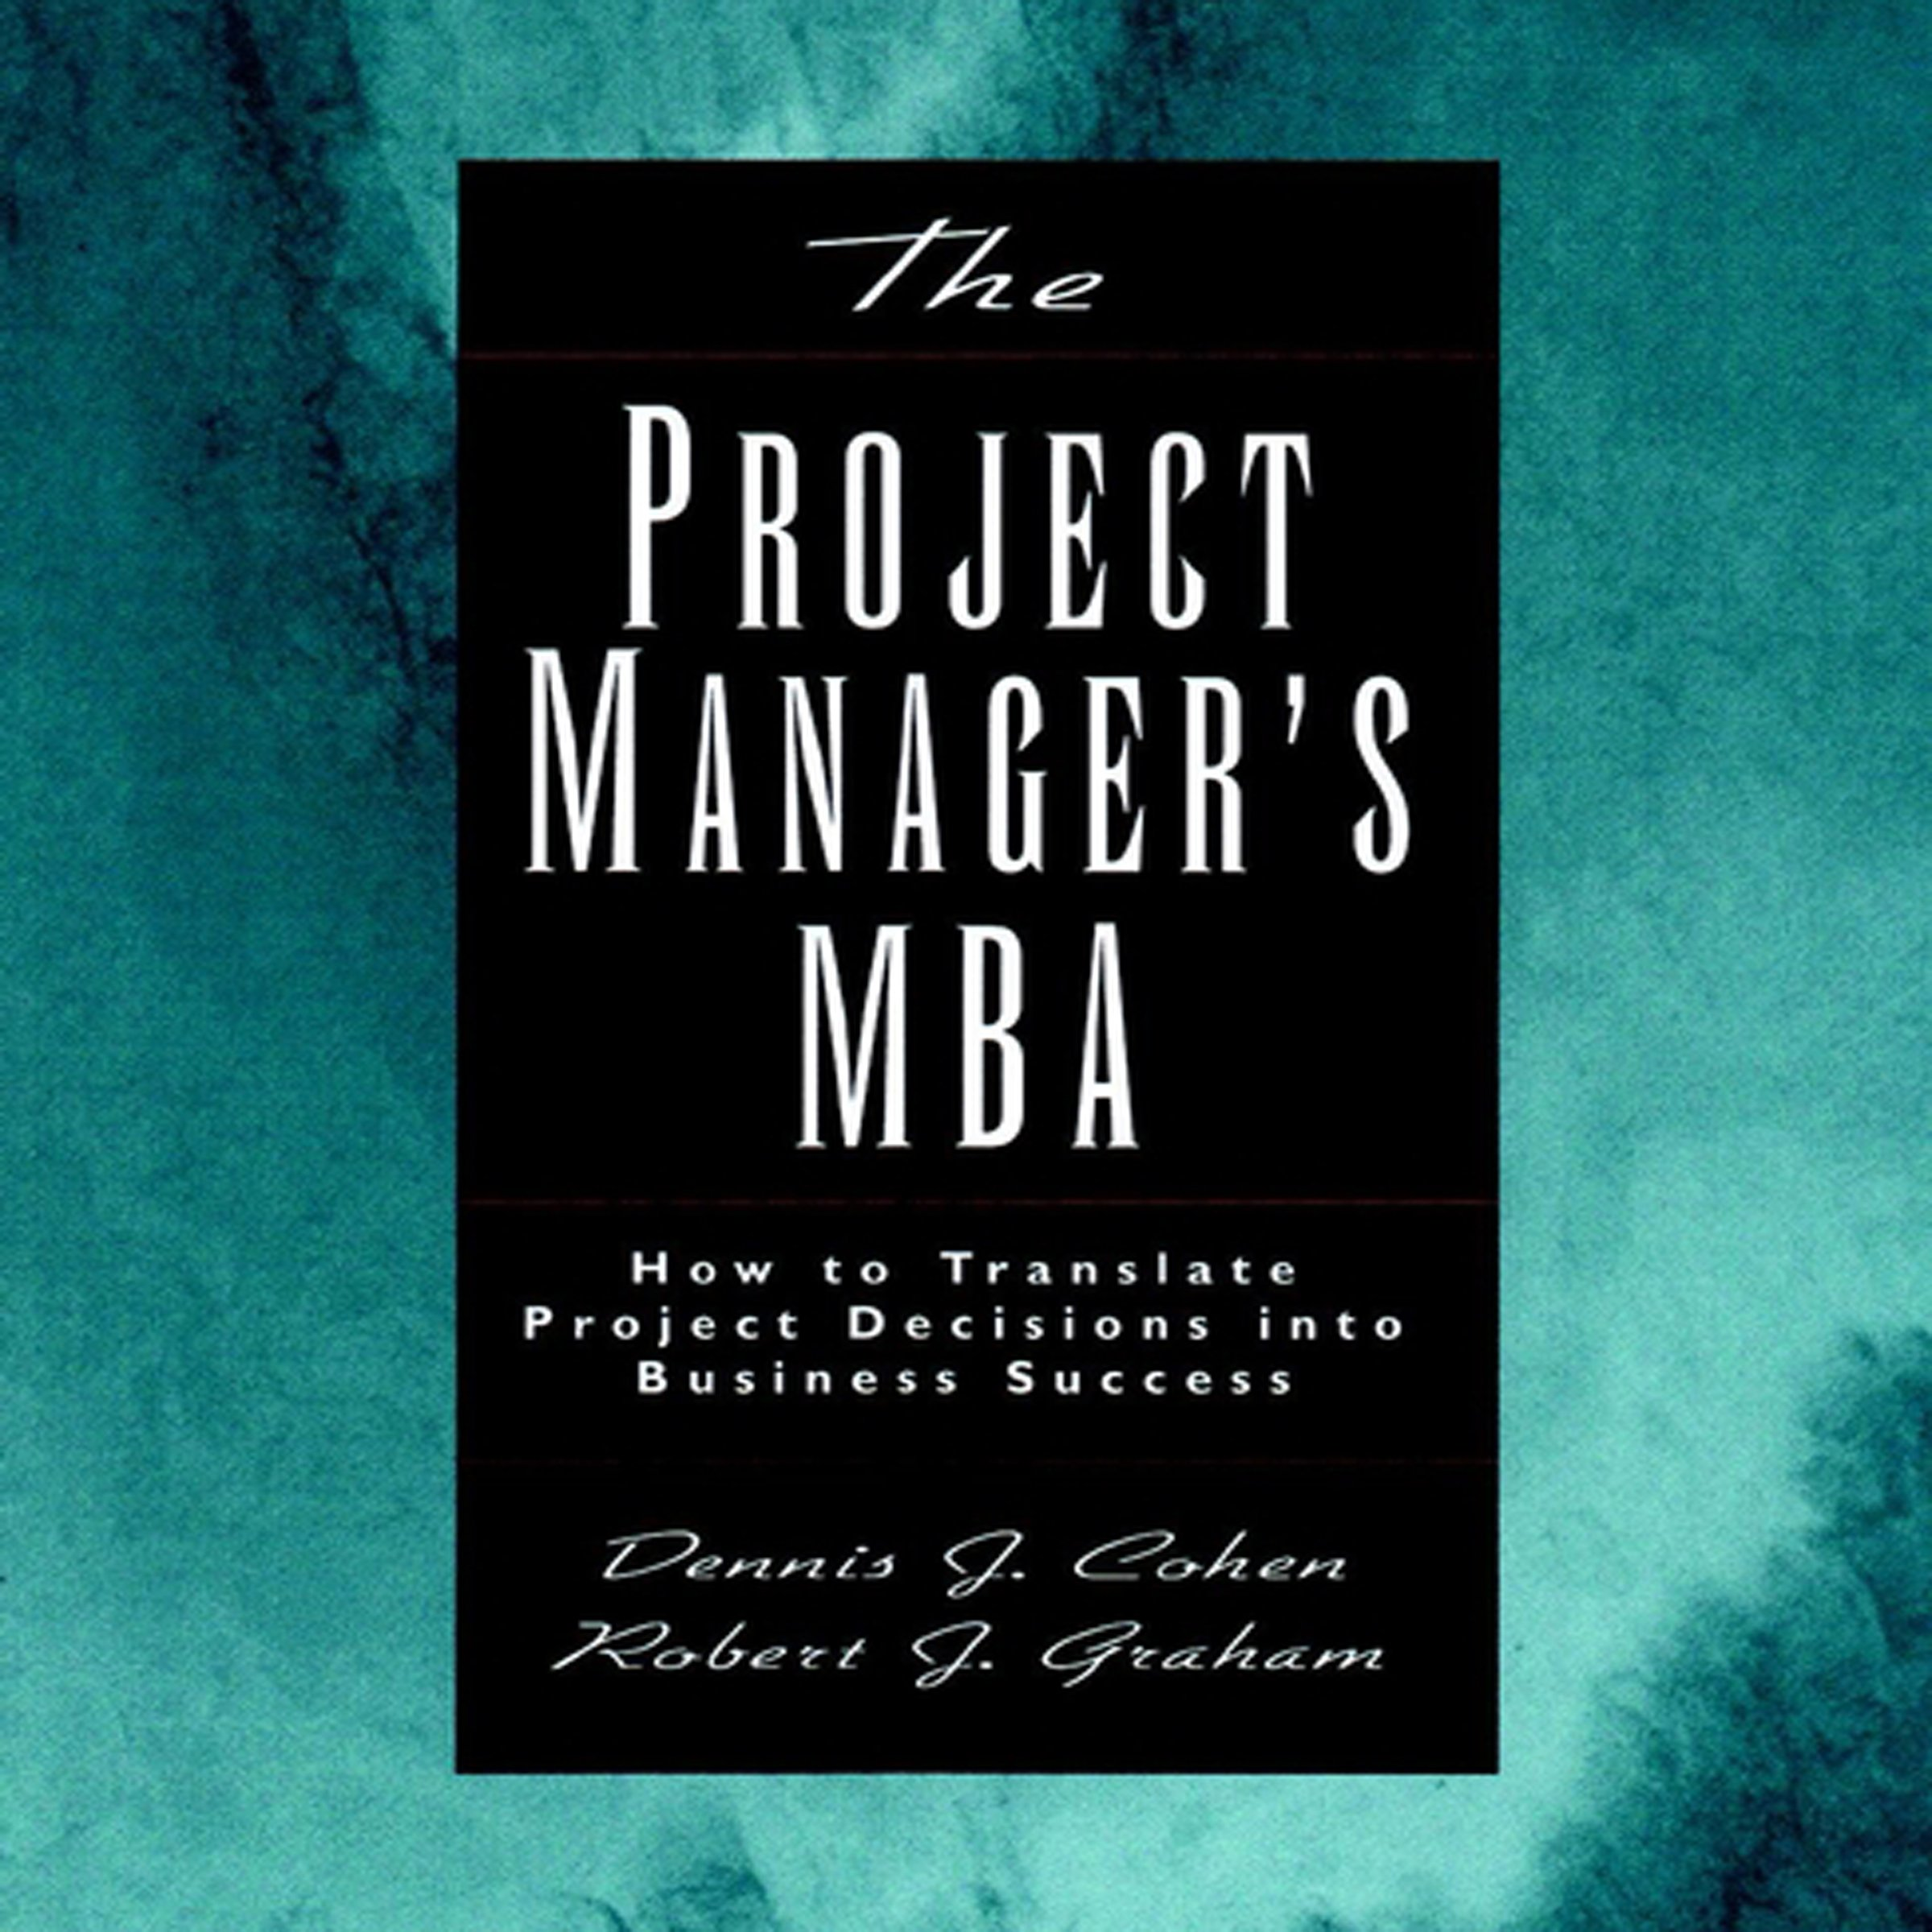 The Project Manager's MBA: How to Translate Project Decisions into Business Success by Gildan Media, LLC (Image #1)